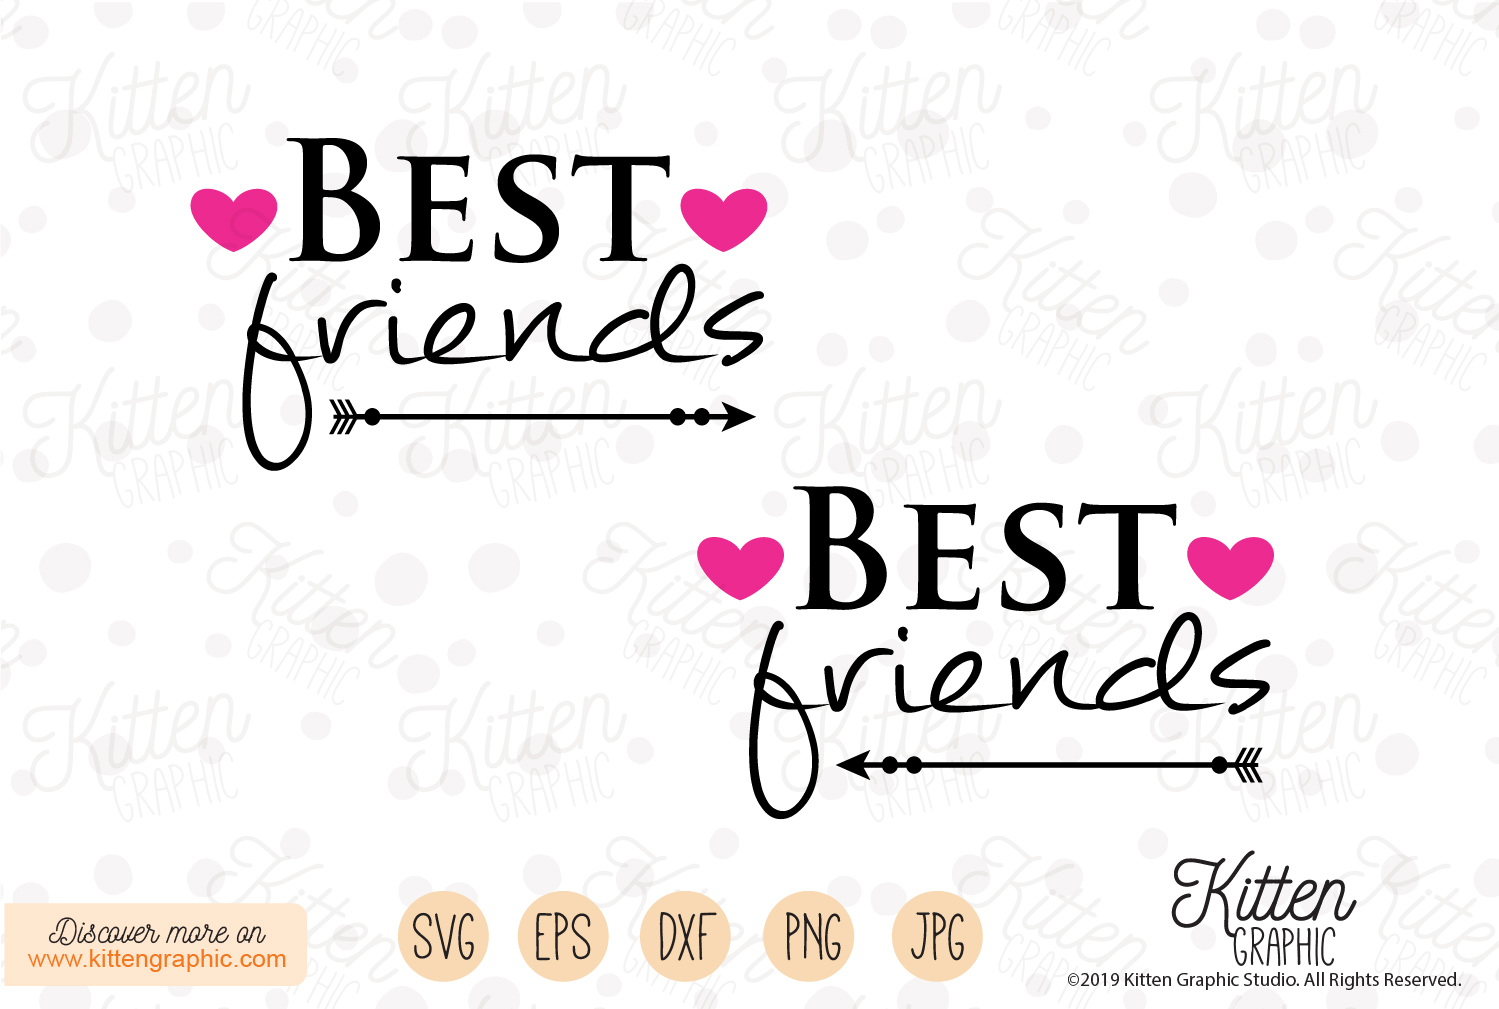 Download Free Best Friends Graphic By Kittengraphicstudio Creative Fabrica for Cricut Explore, Silhouette and other cutting machines.